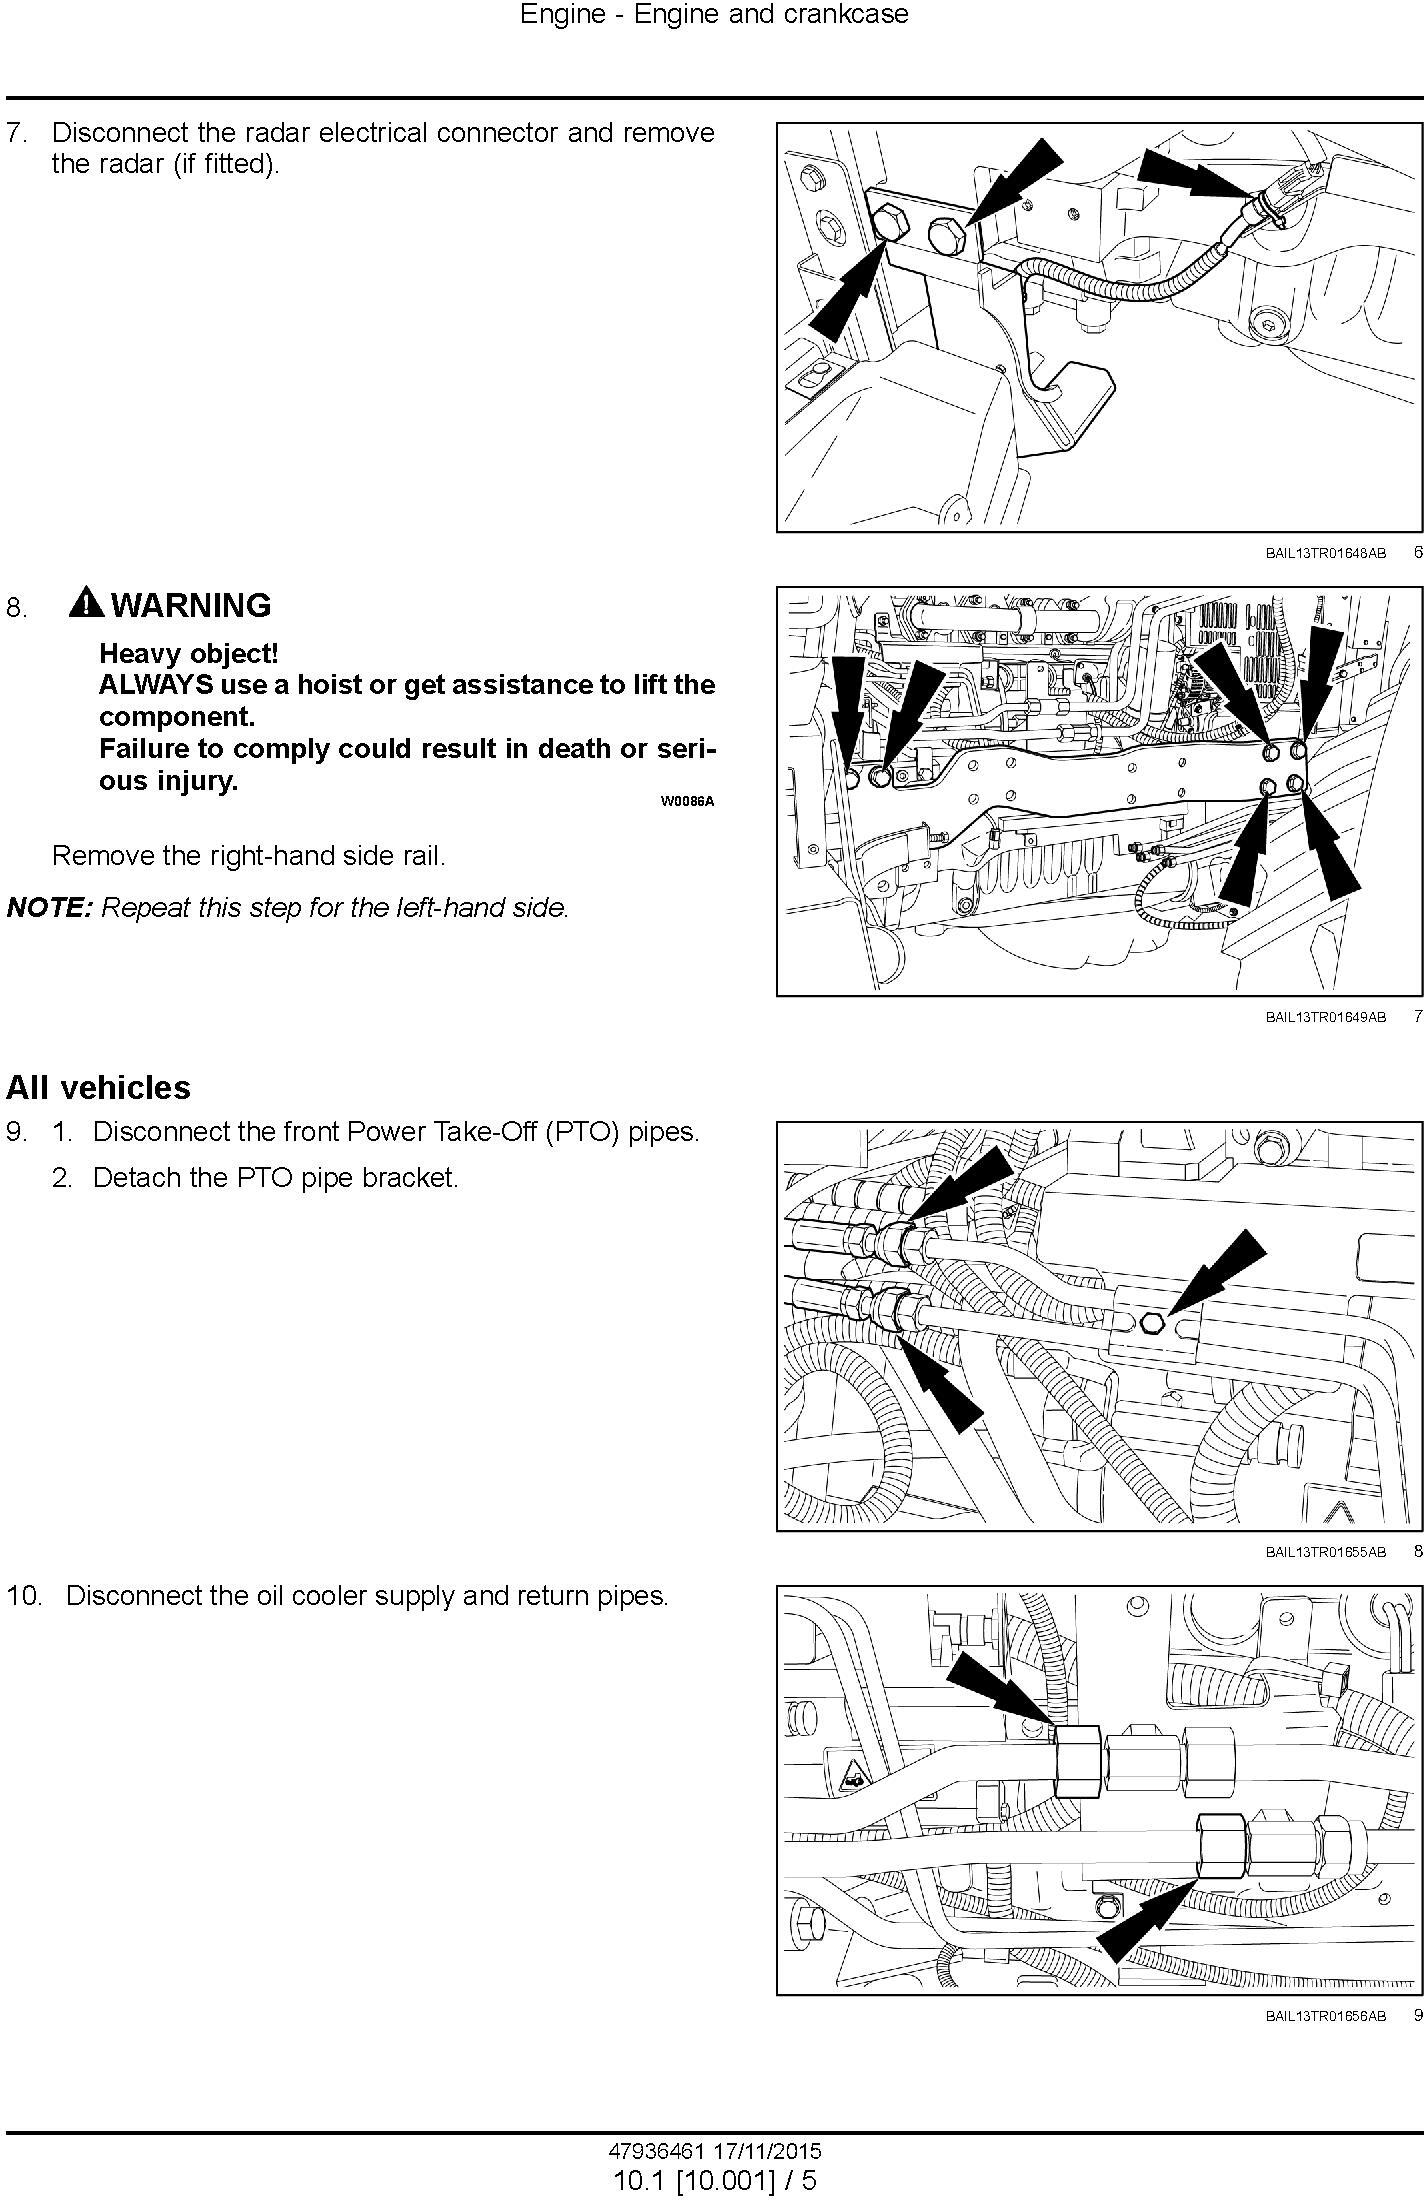 New Holland T7.175, T7.190, T7.210, T7.225 Auto Command Stage IV Tractors Service Manual (Europe) - 1